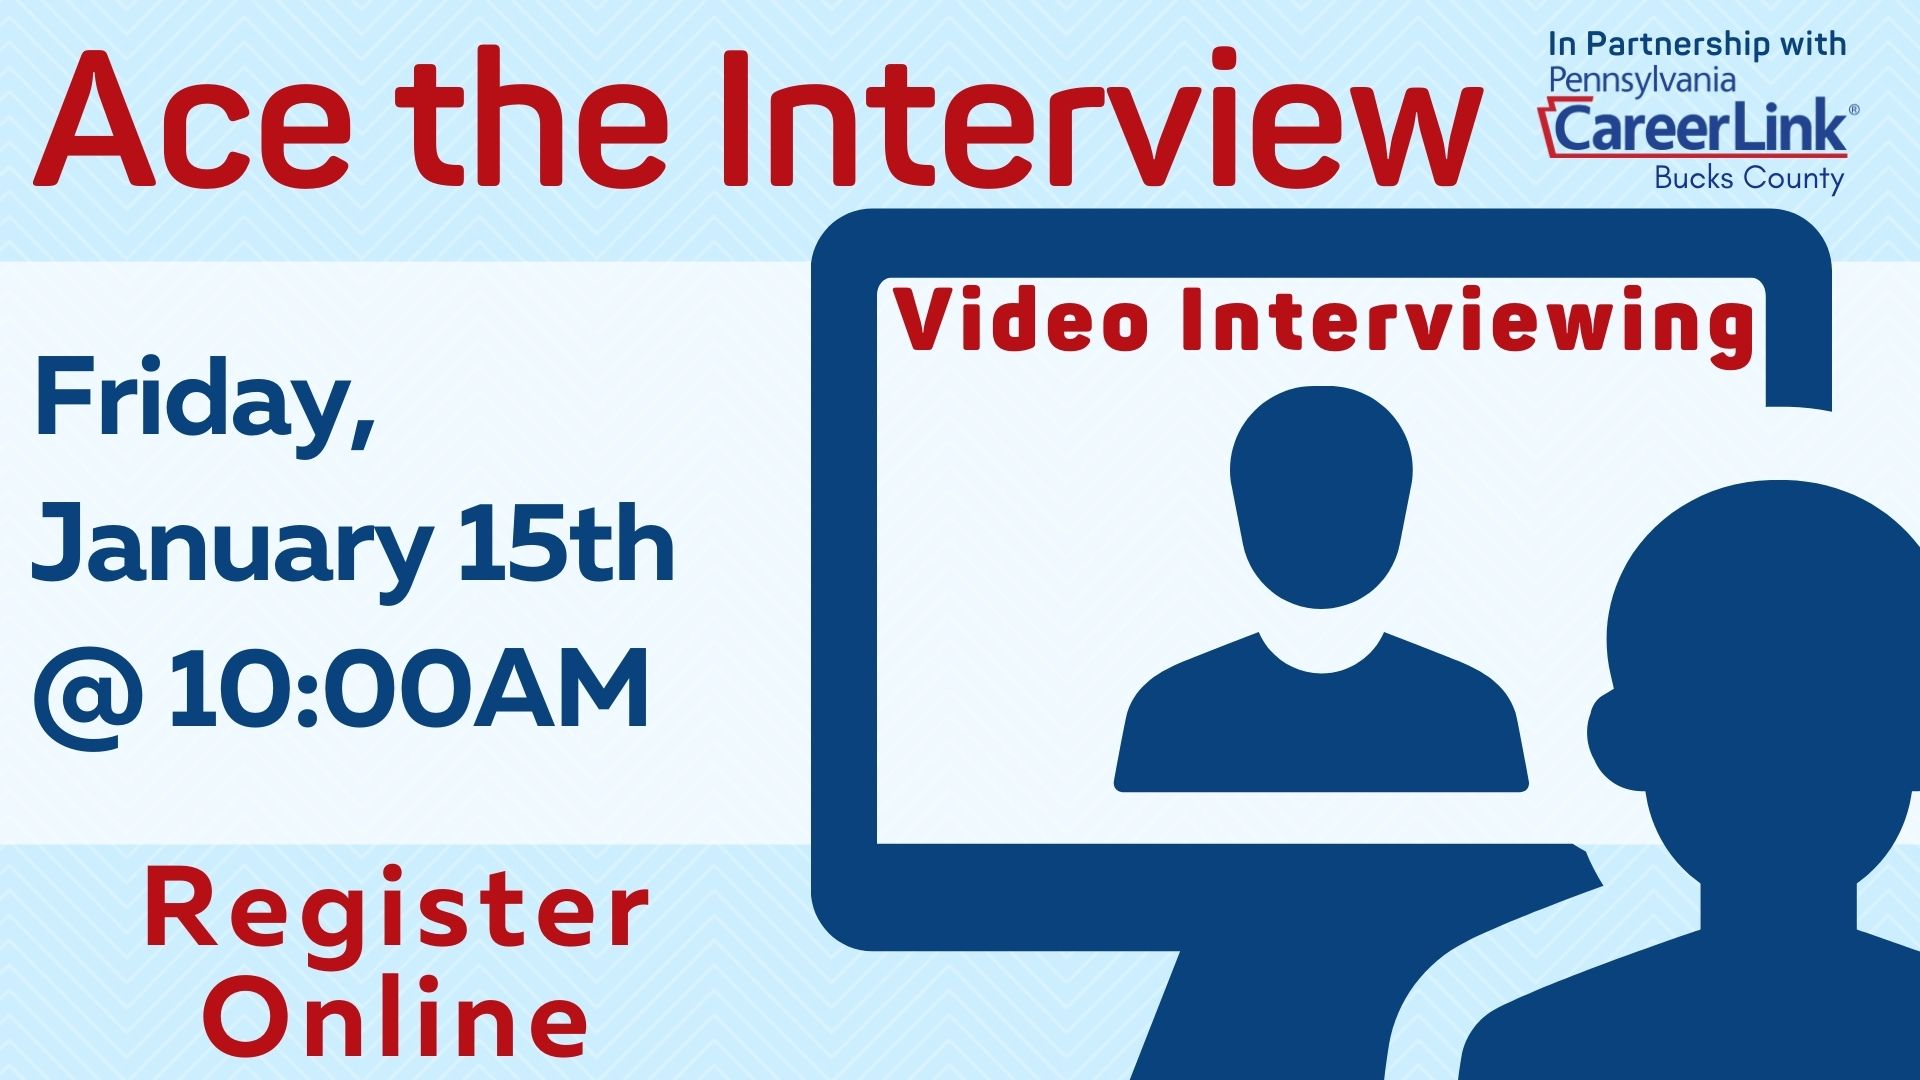 PA CareerLink: Ace the Interview